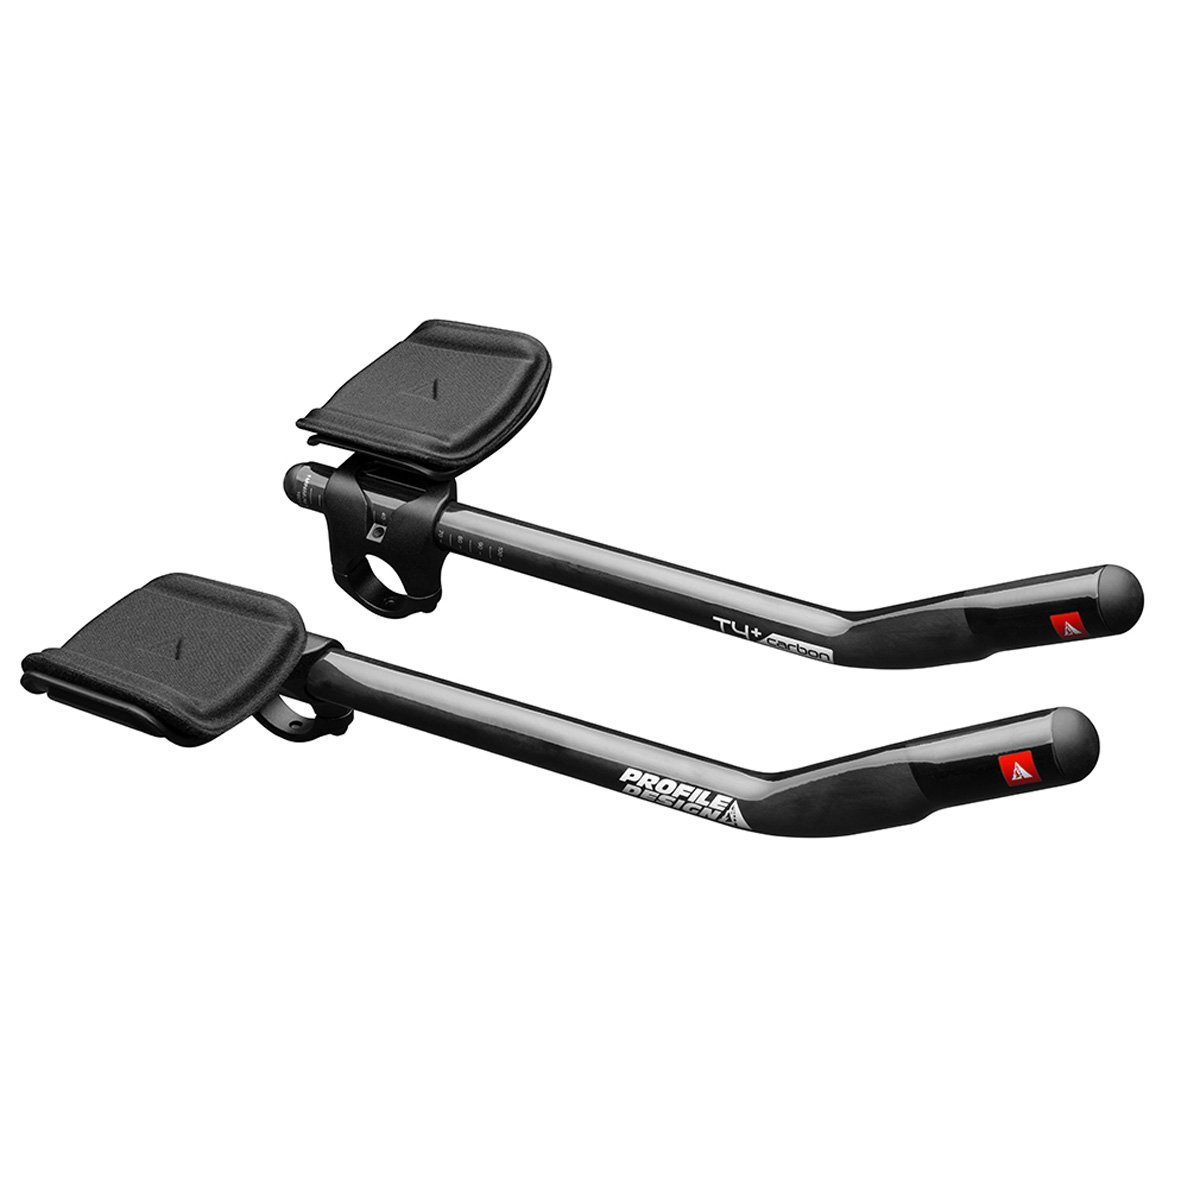 Profile Designs T4 + Carbon AeroBar